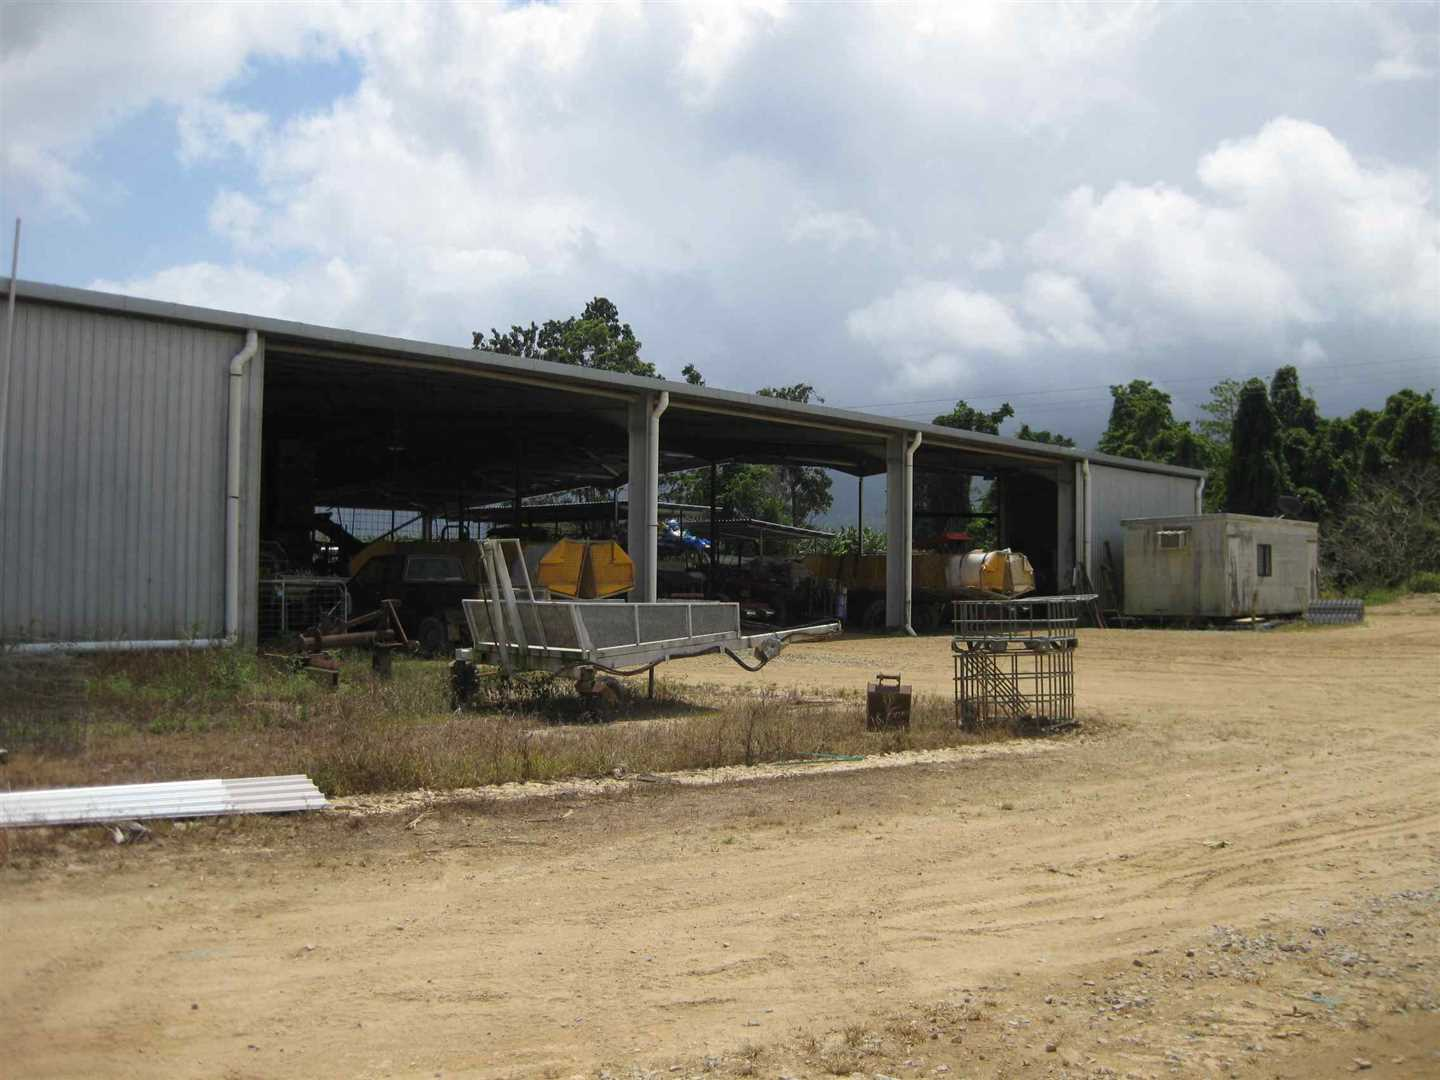 View of part of packing shed, photo 1